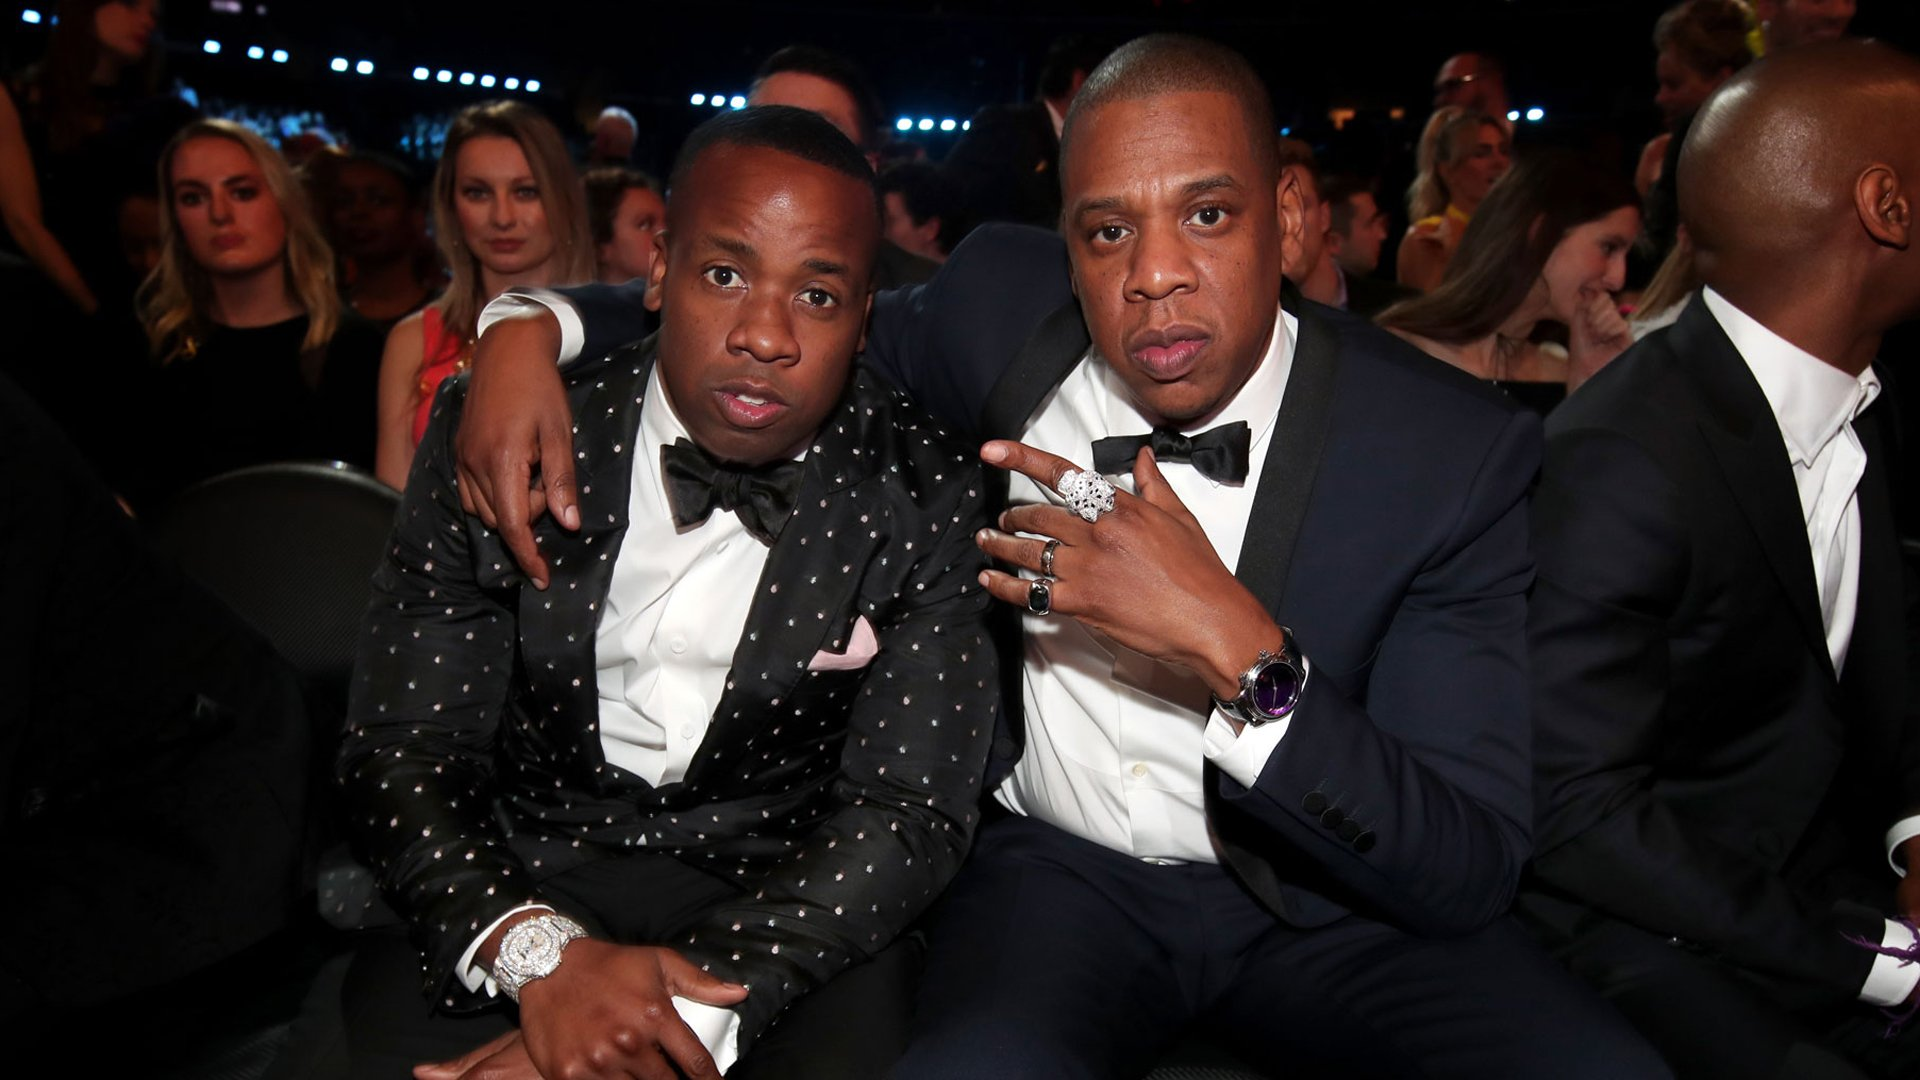 Yo Gotti and Jay-Z during The 59th GRAMMY Awards on Feb. 12, 2017. (Credit: Christopher Polk/Getty)